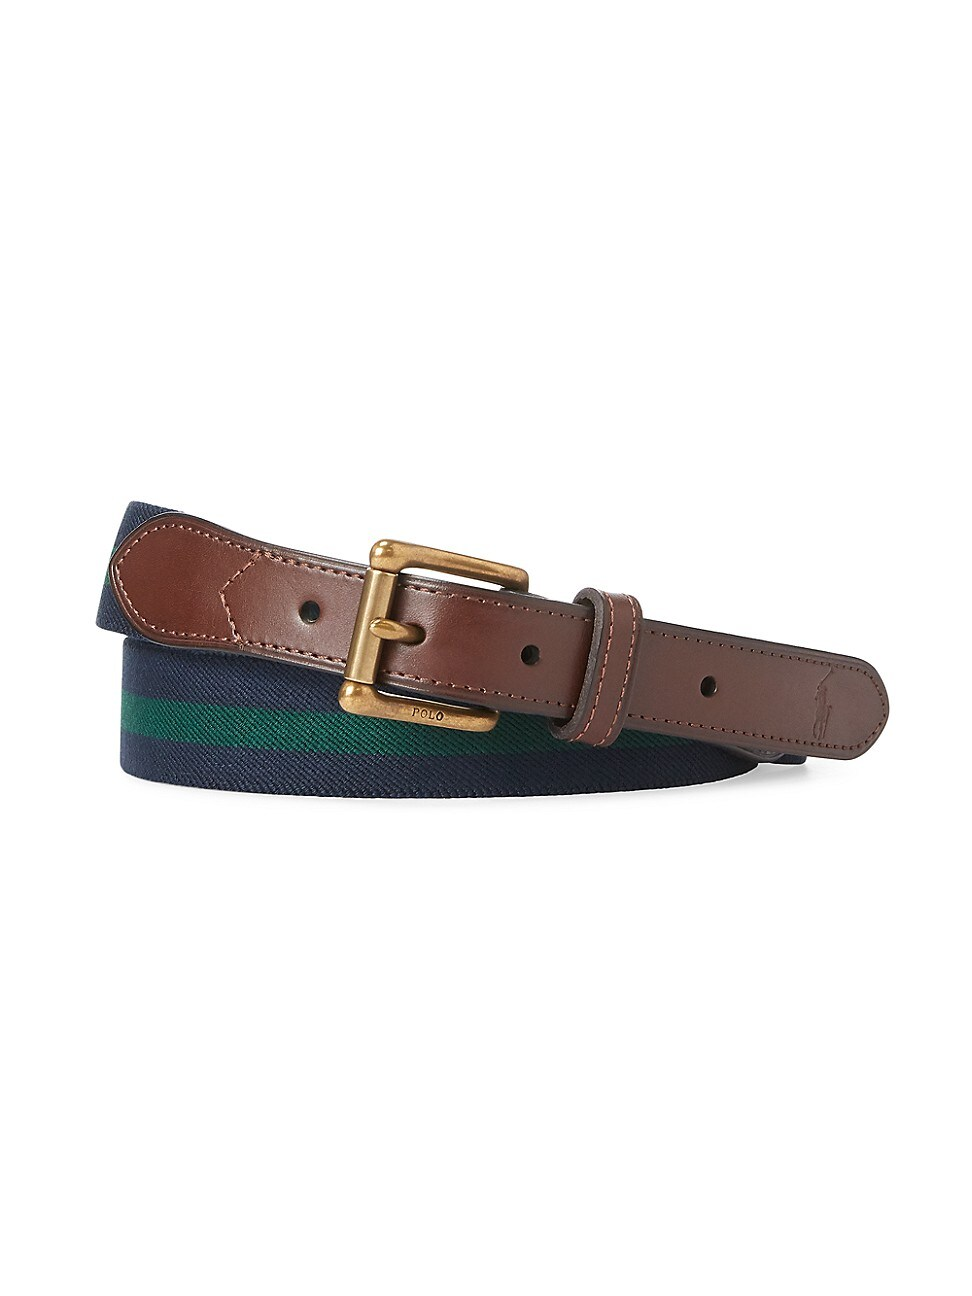 Polo Ralph Lauren Belt, Edge-stitched Leather Belt In Navy Forest Green